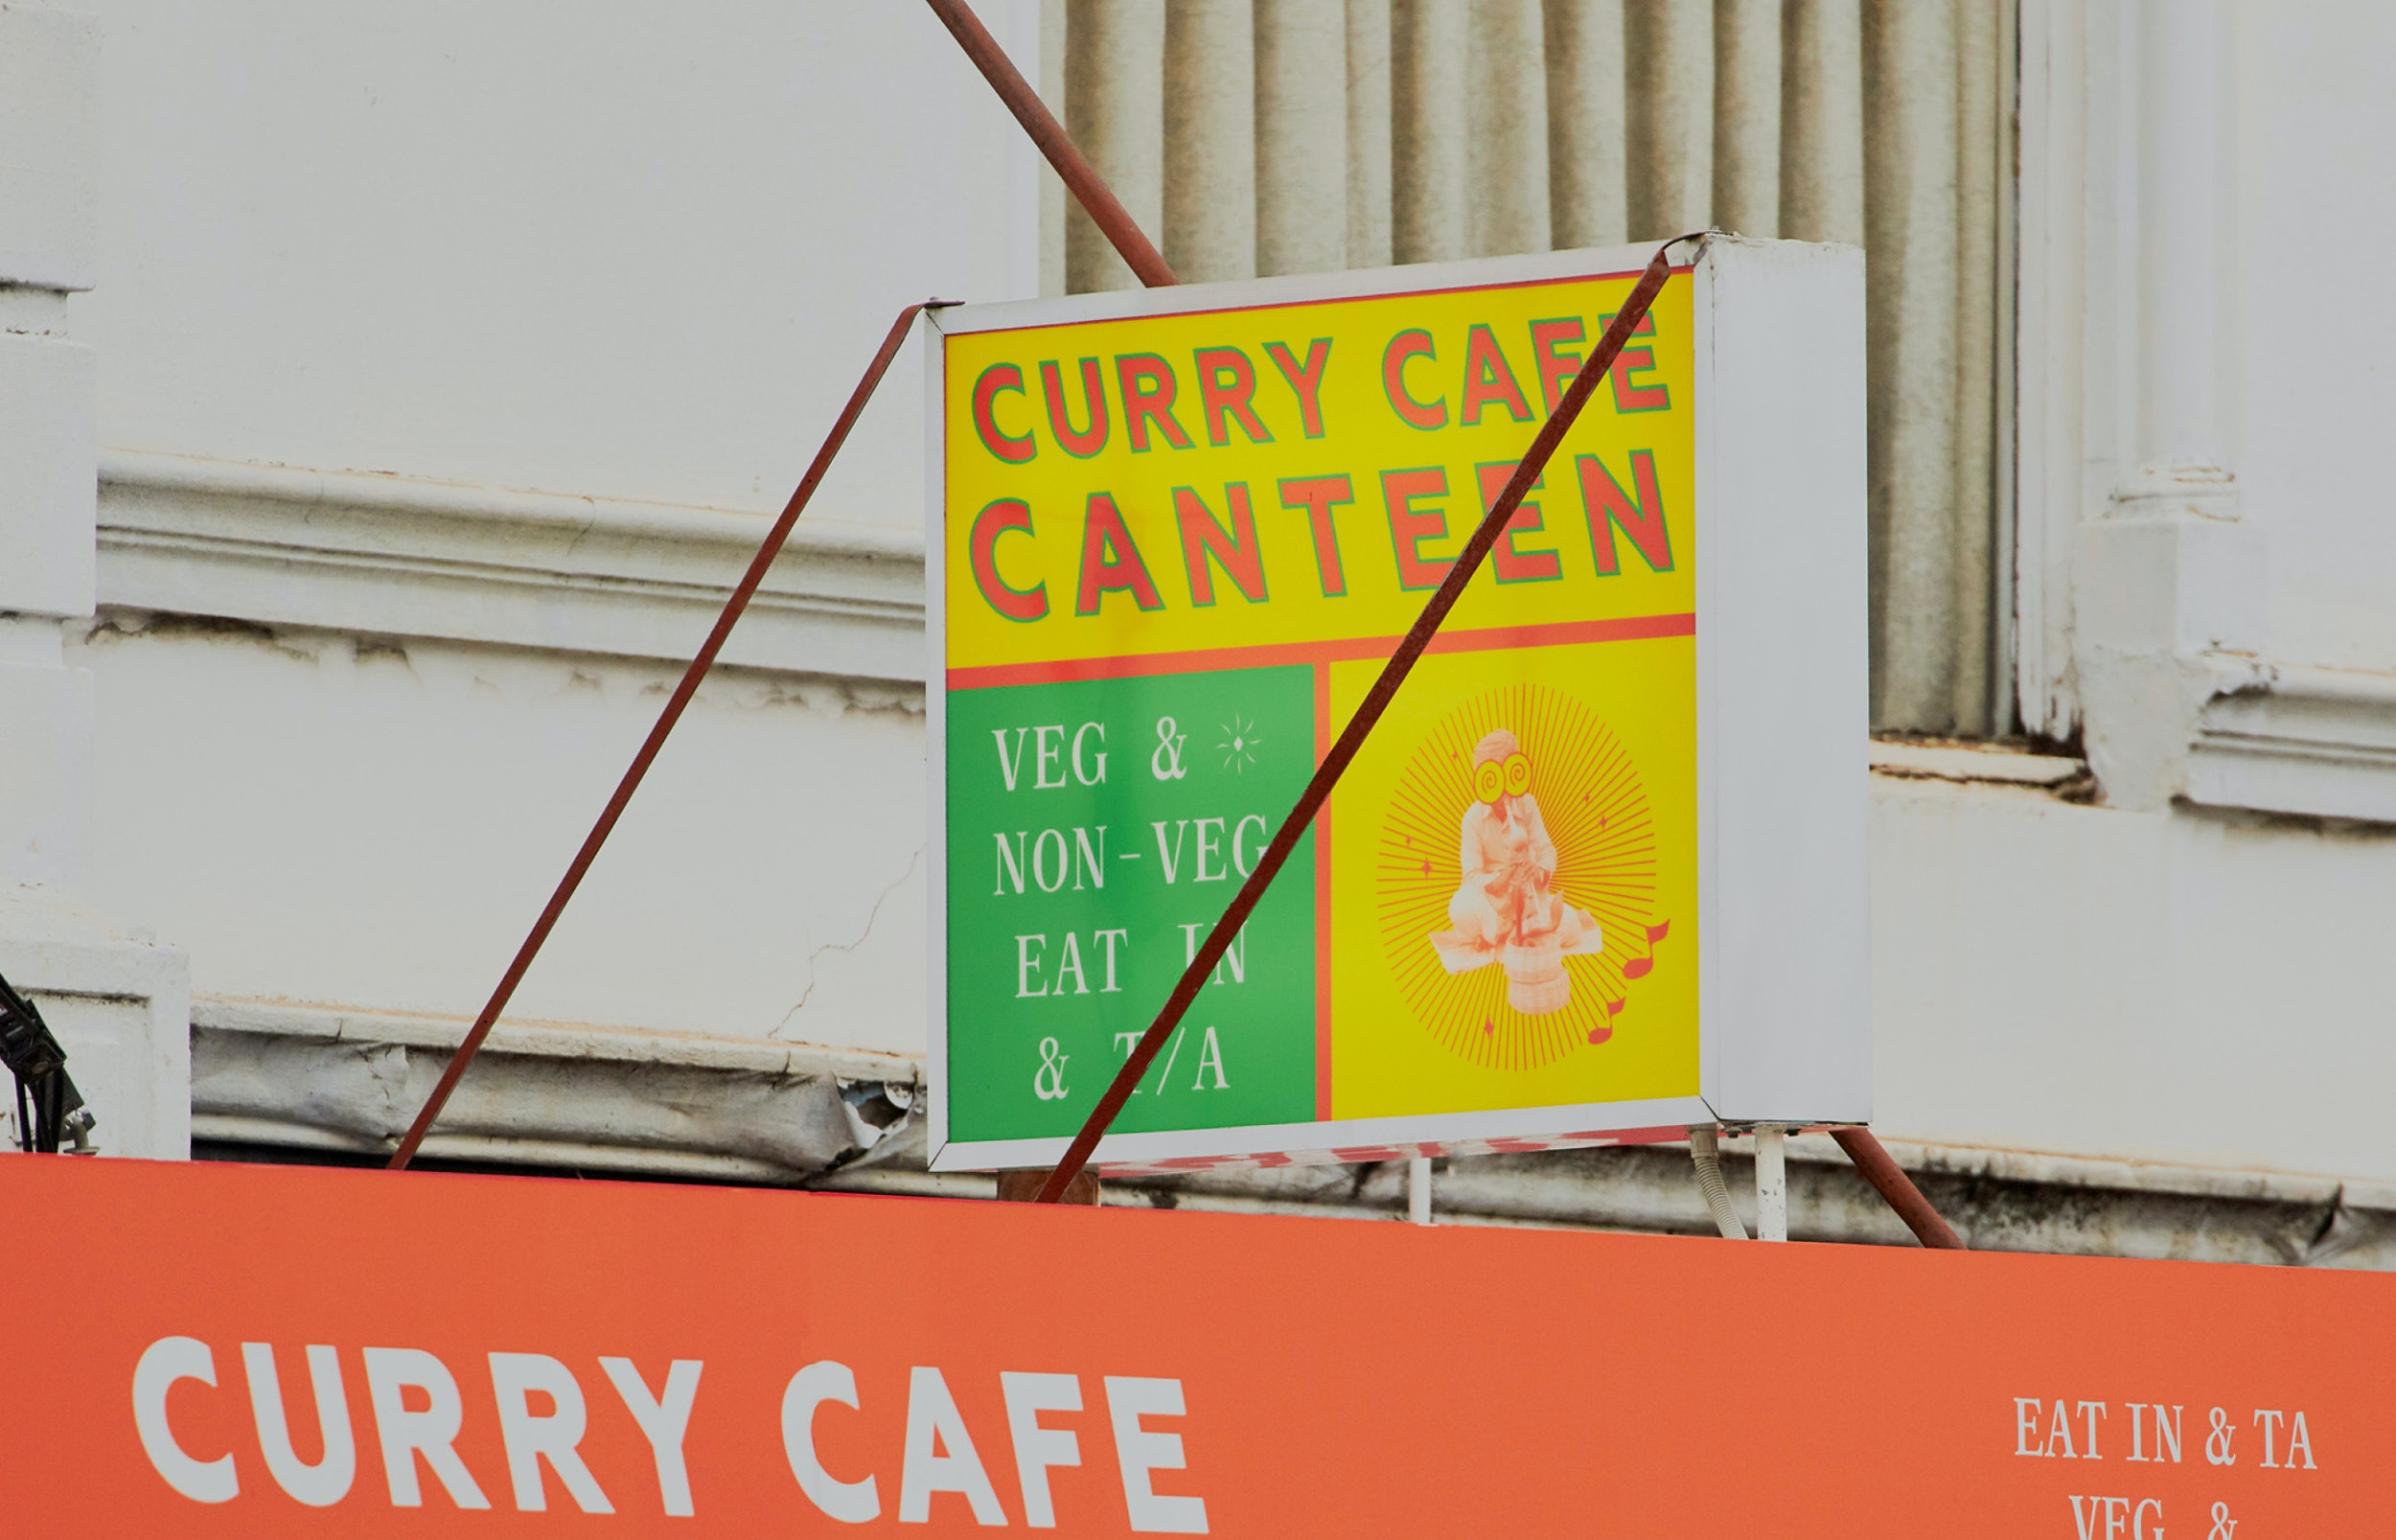 Curry Cafe restaurant brand identity and signage, Melbourne